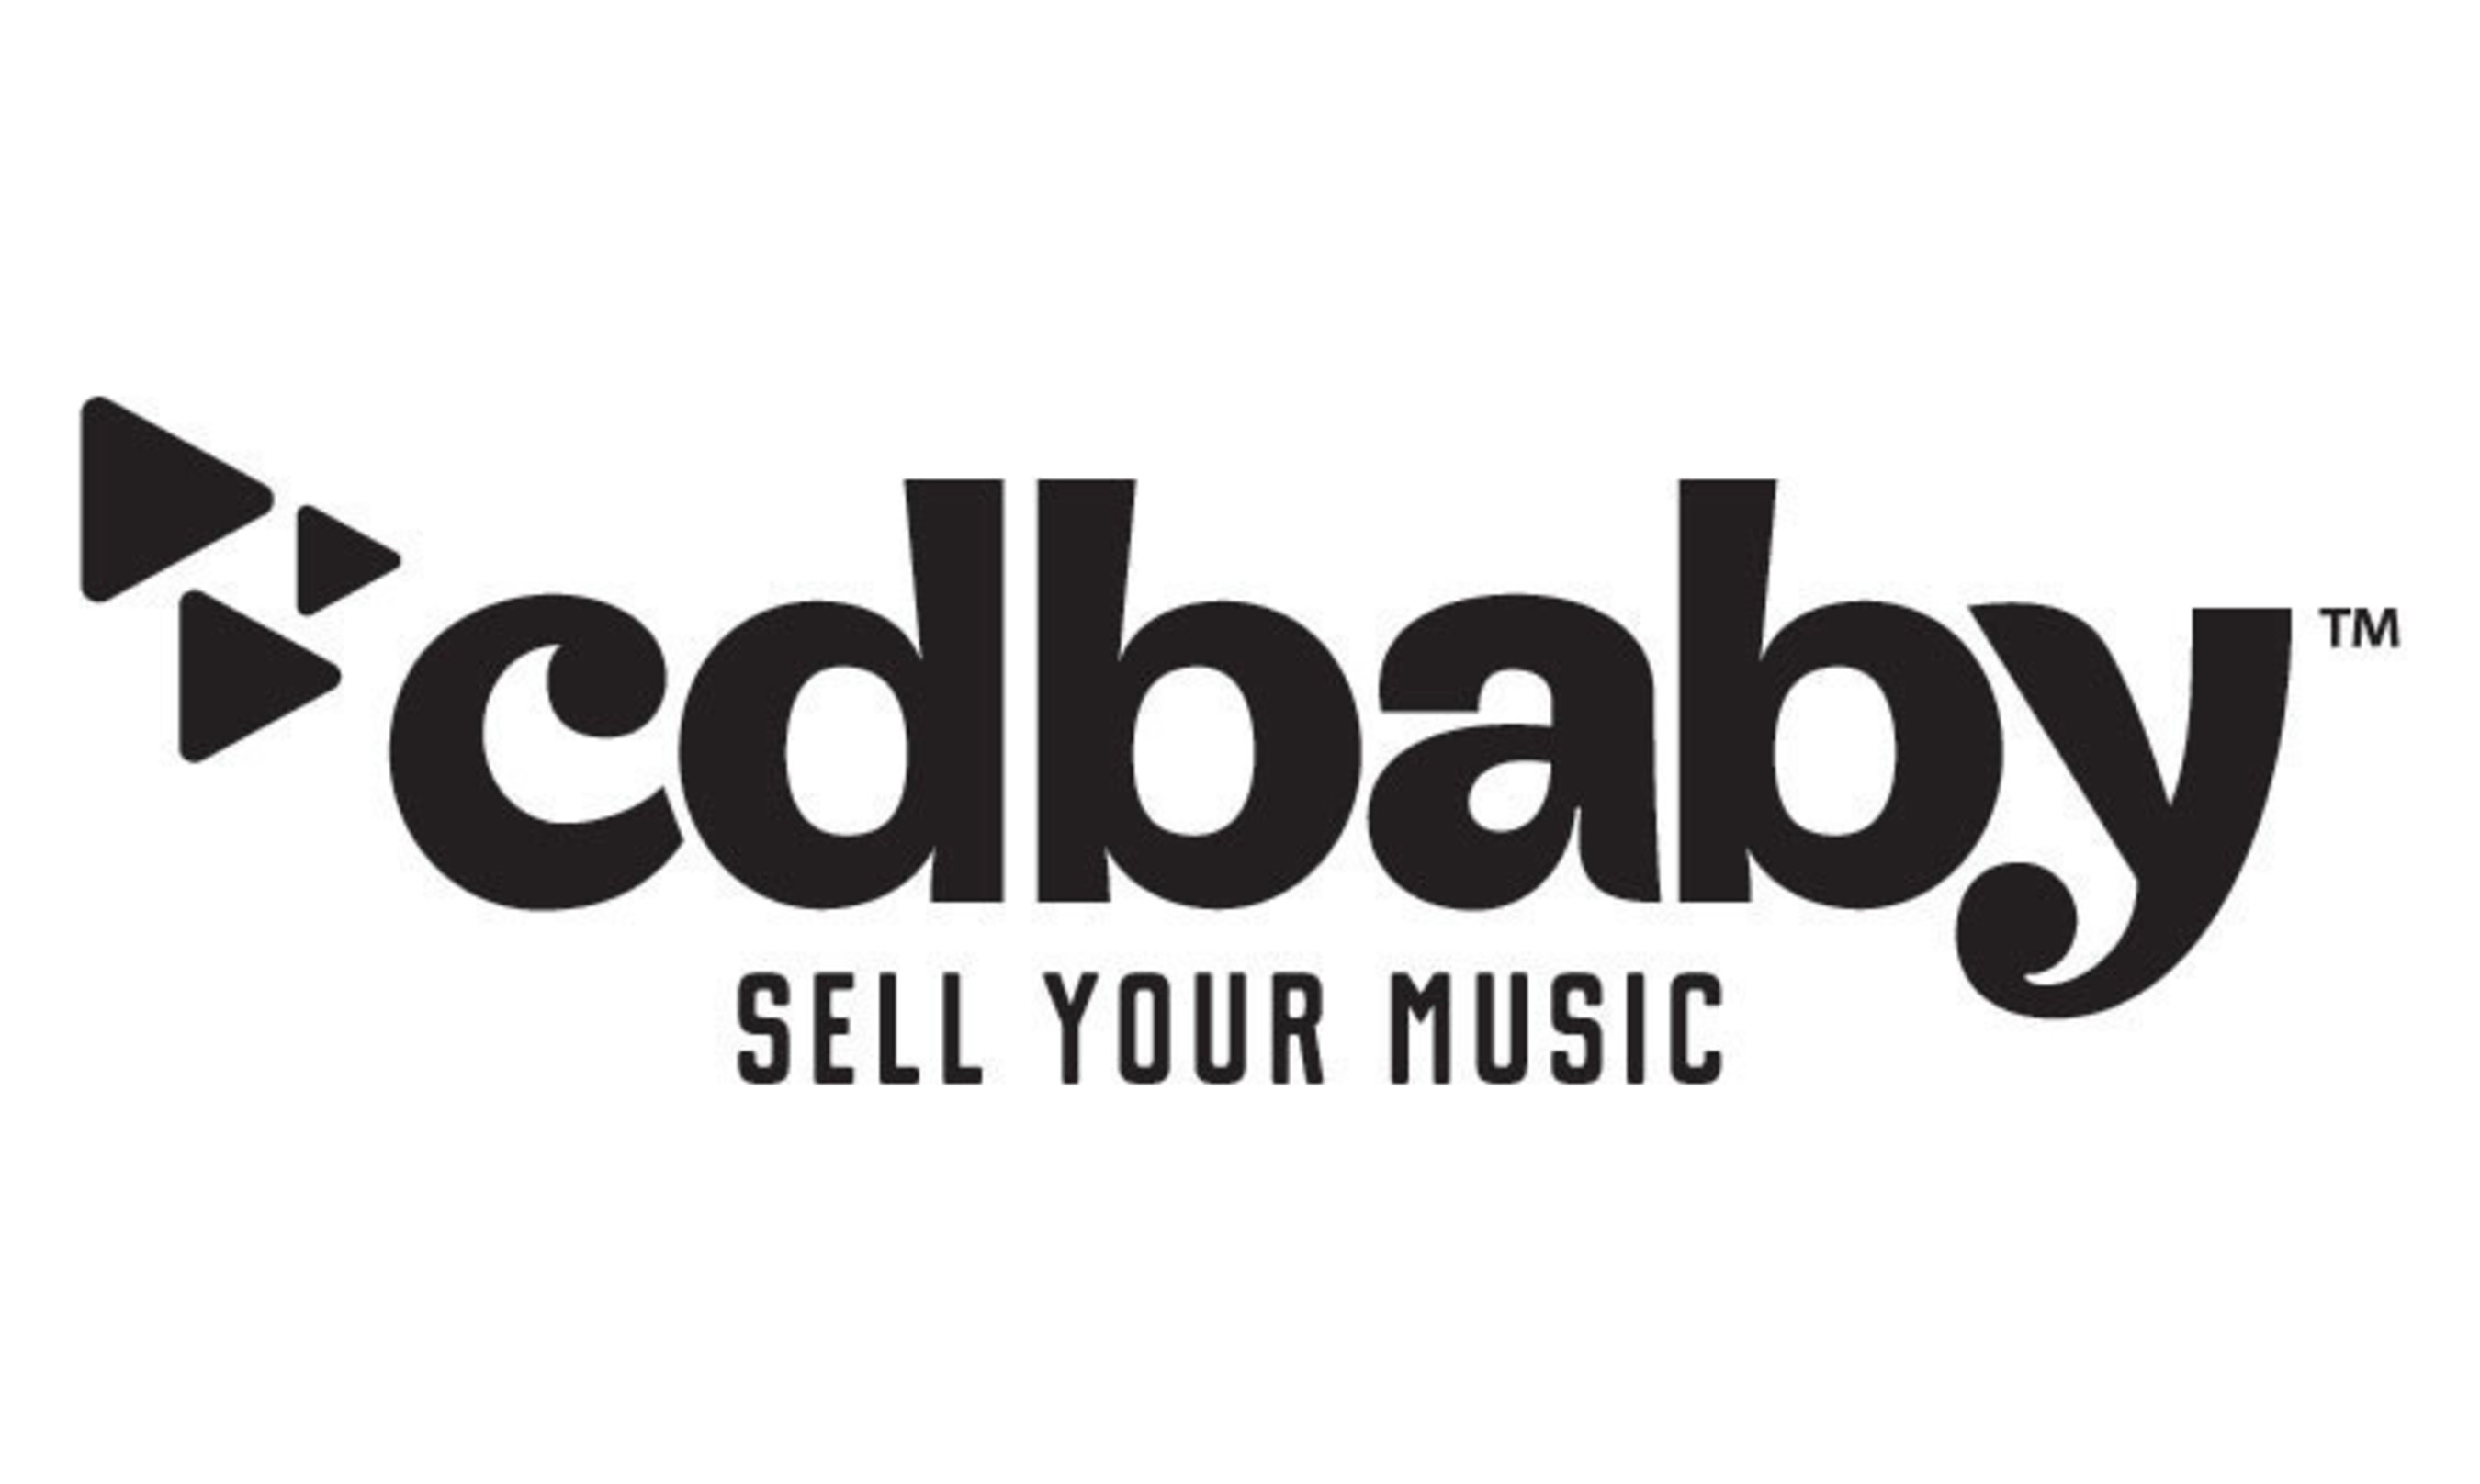 Sell your music.